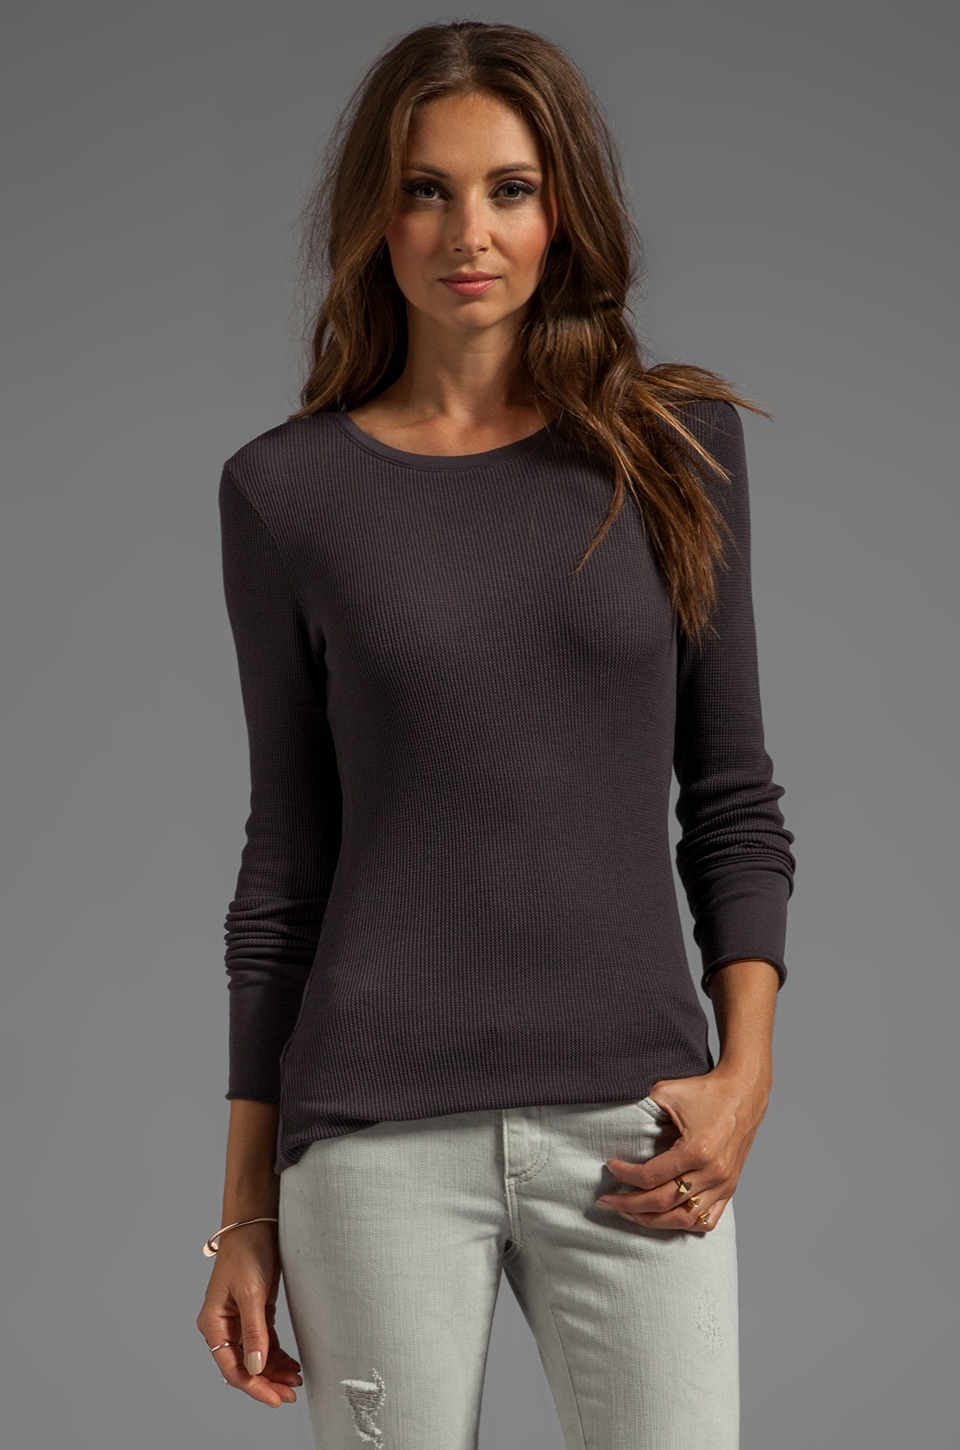 Bobi Thermal Long Sleeve in Empire